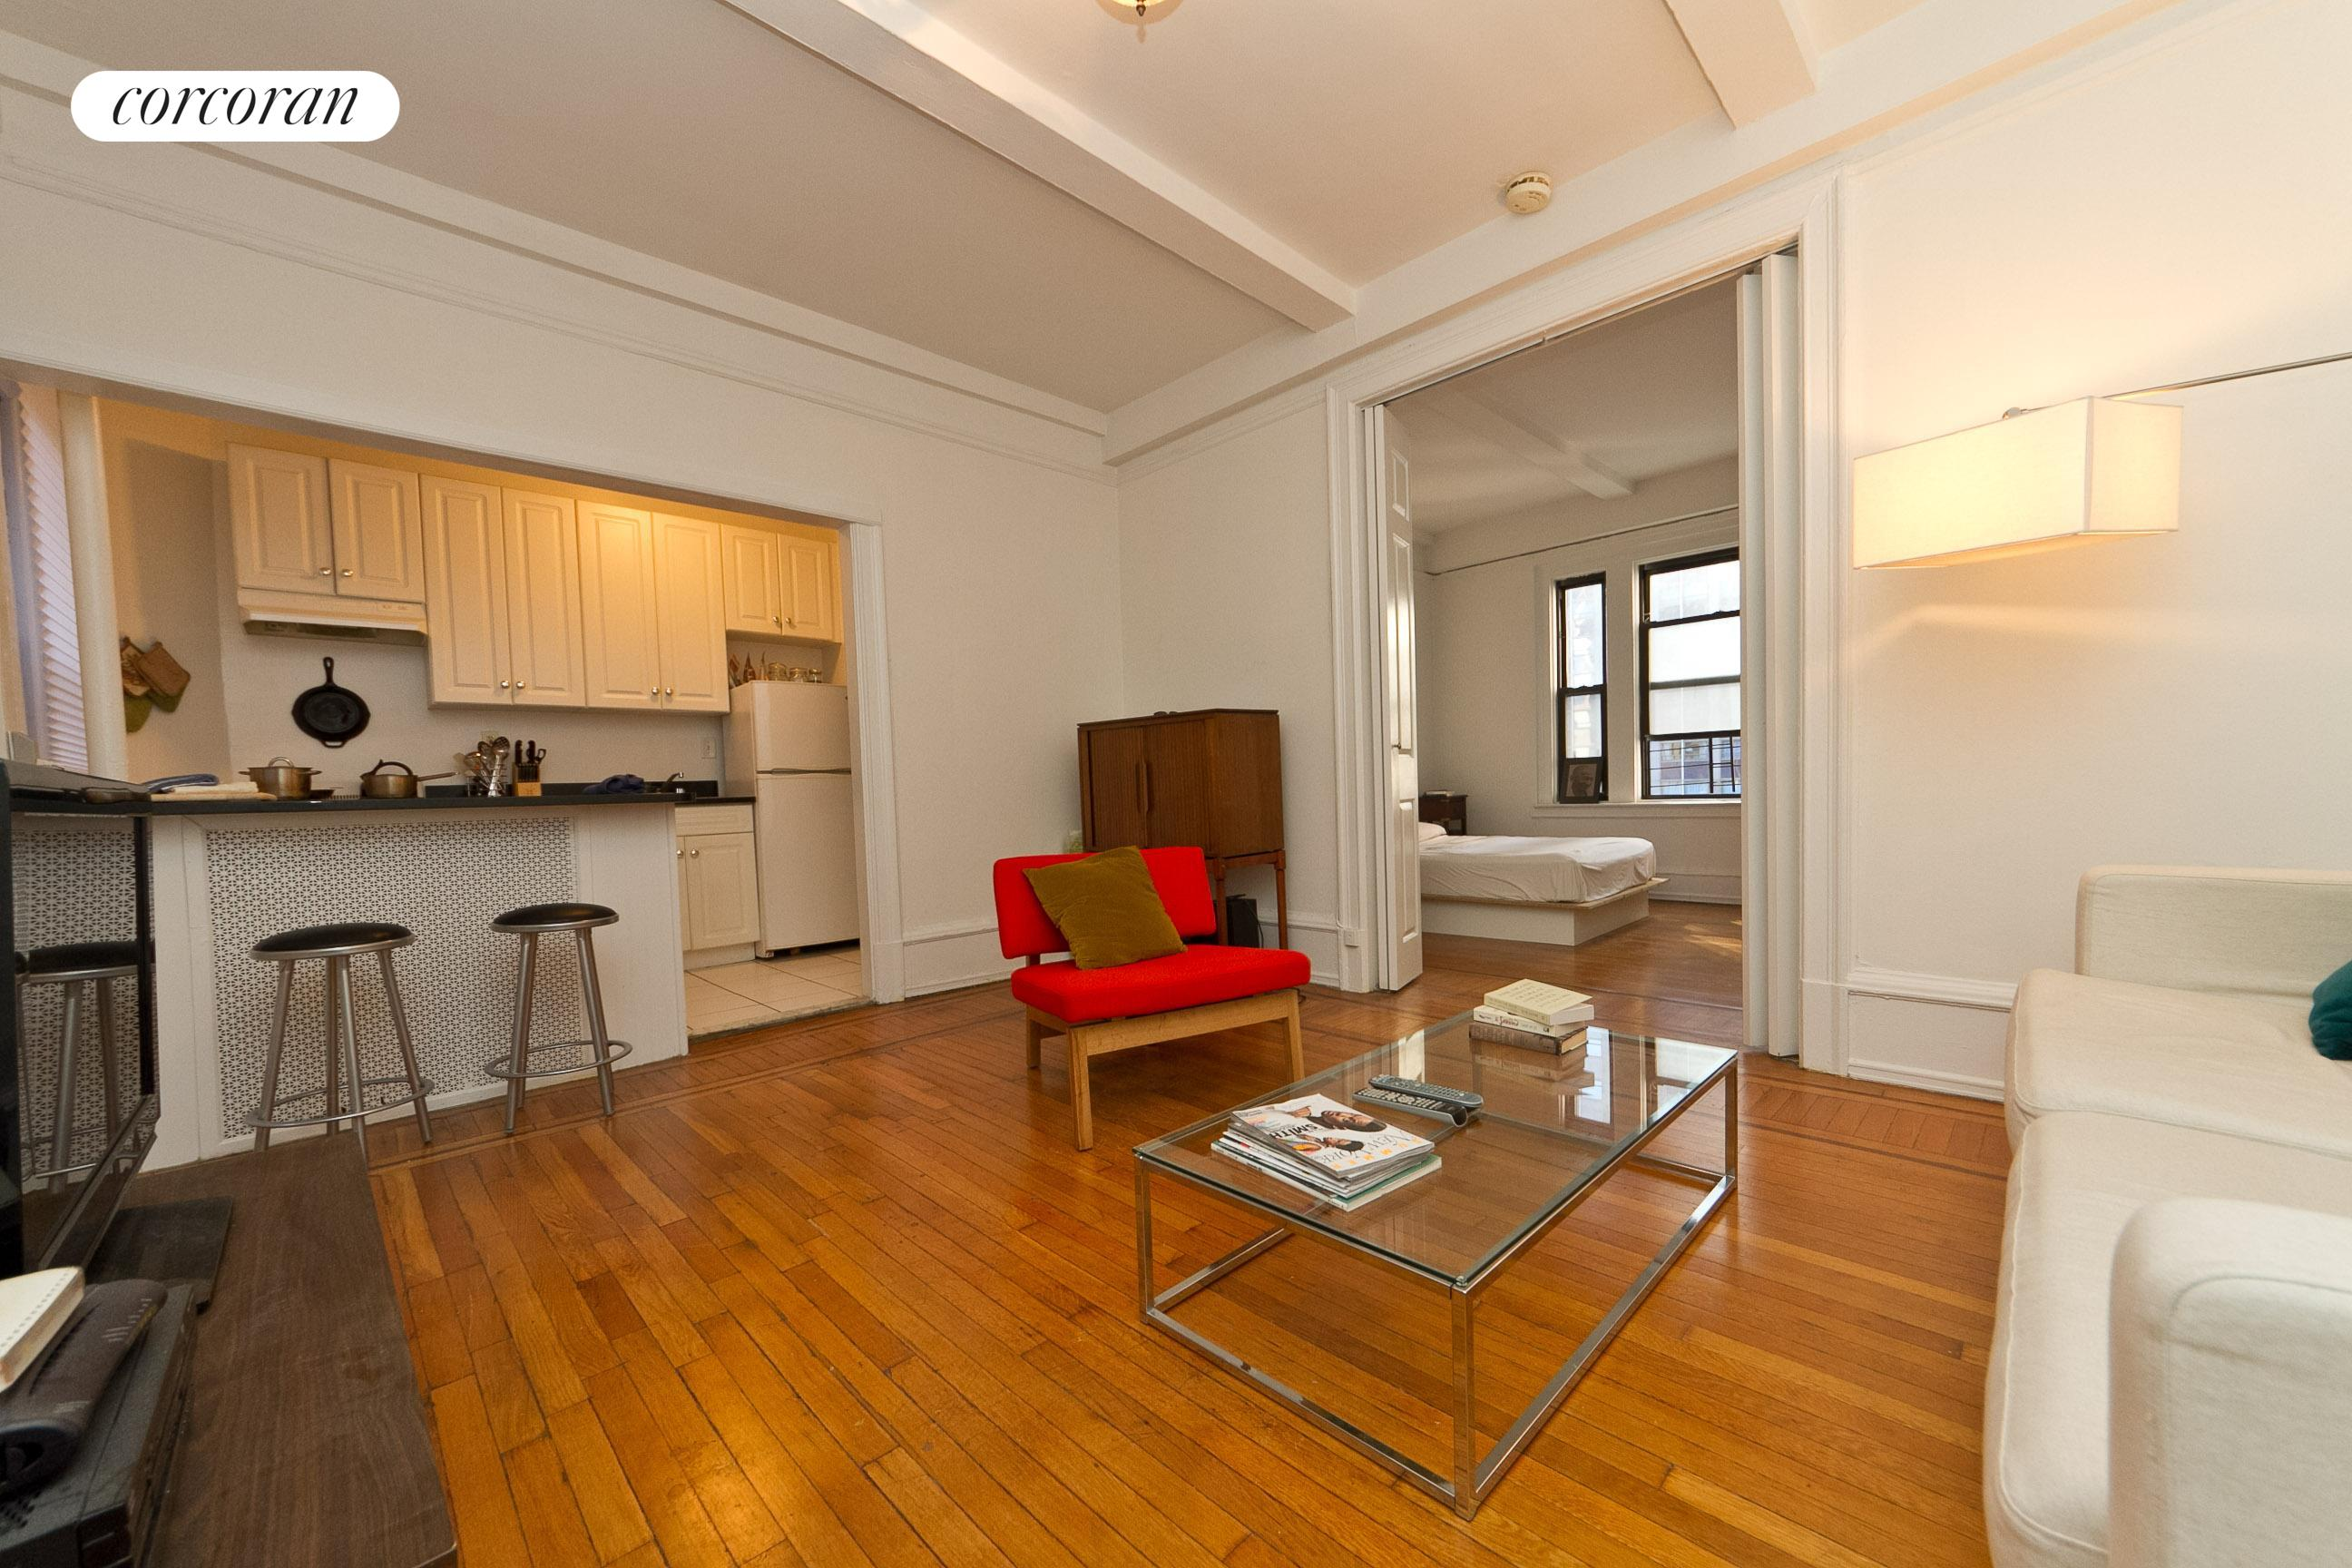 140 West 55th ST.